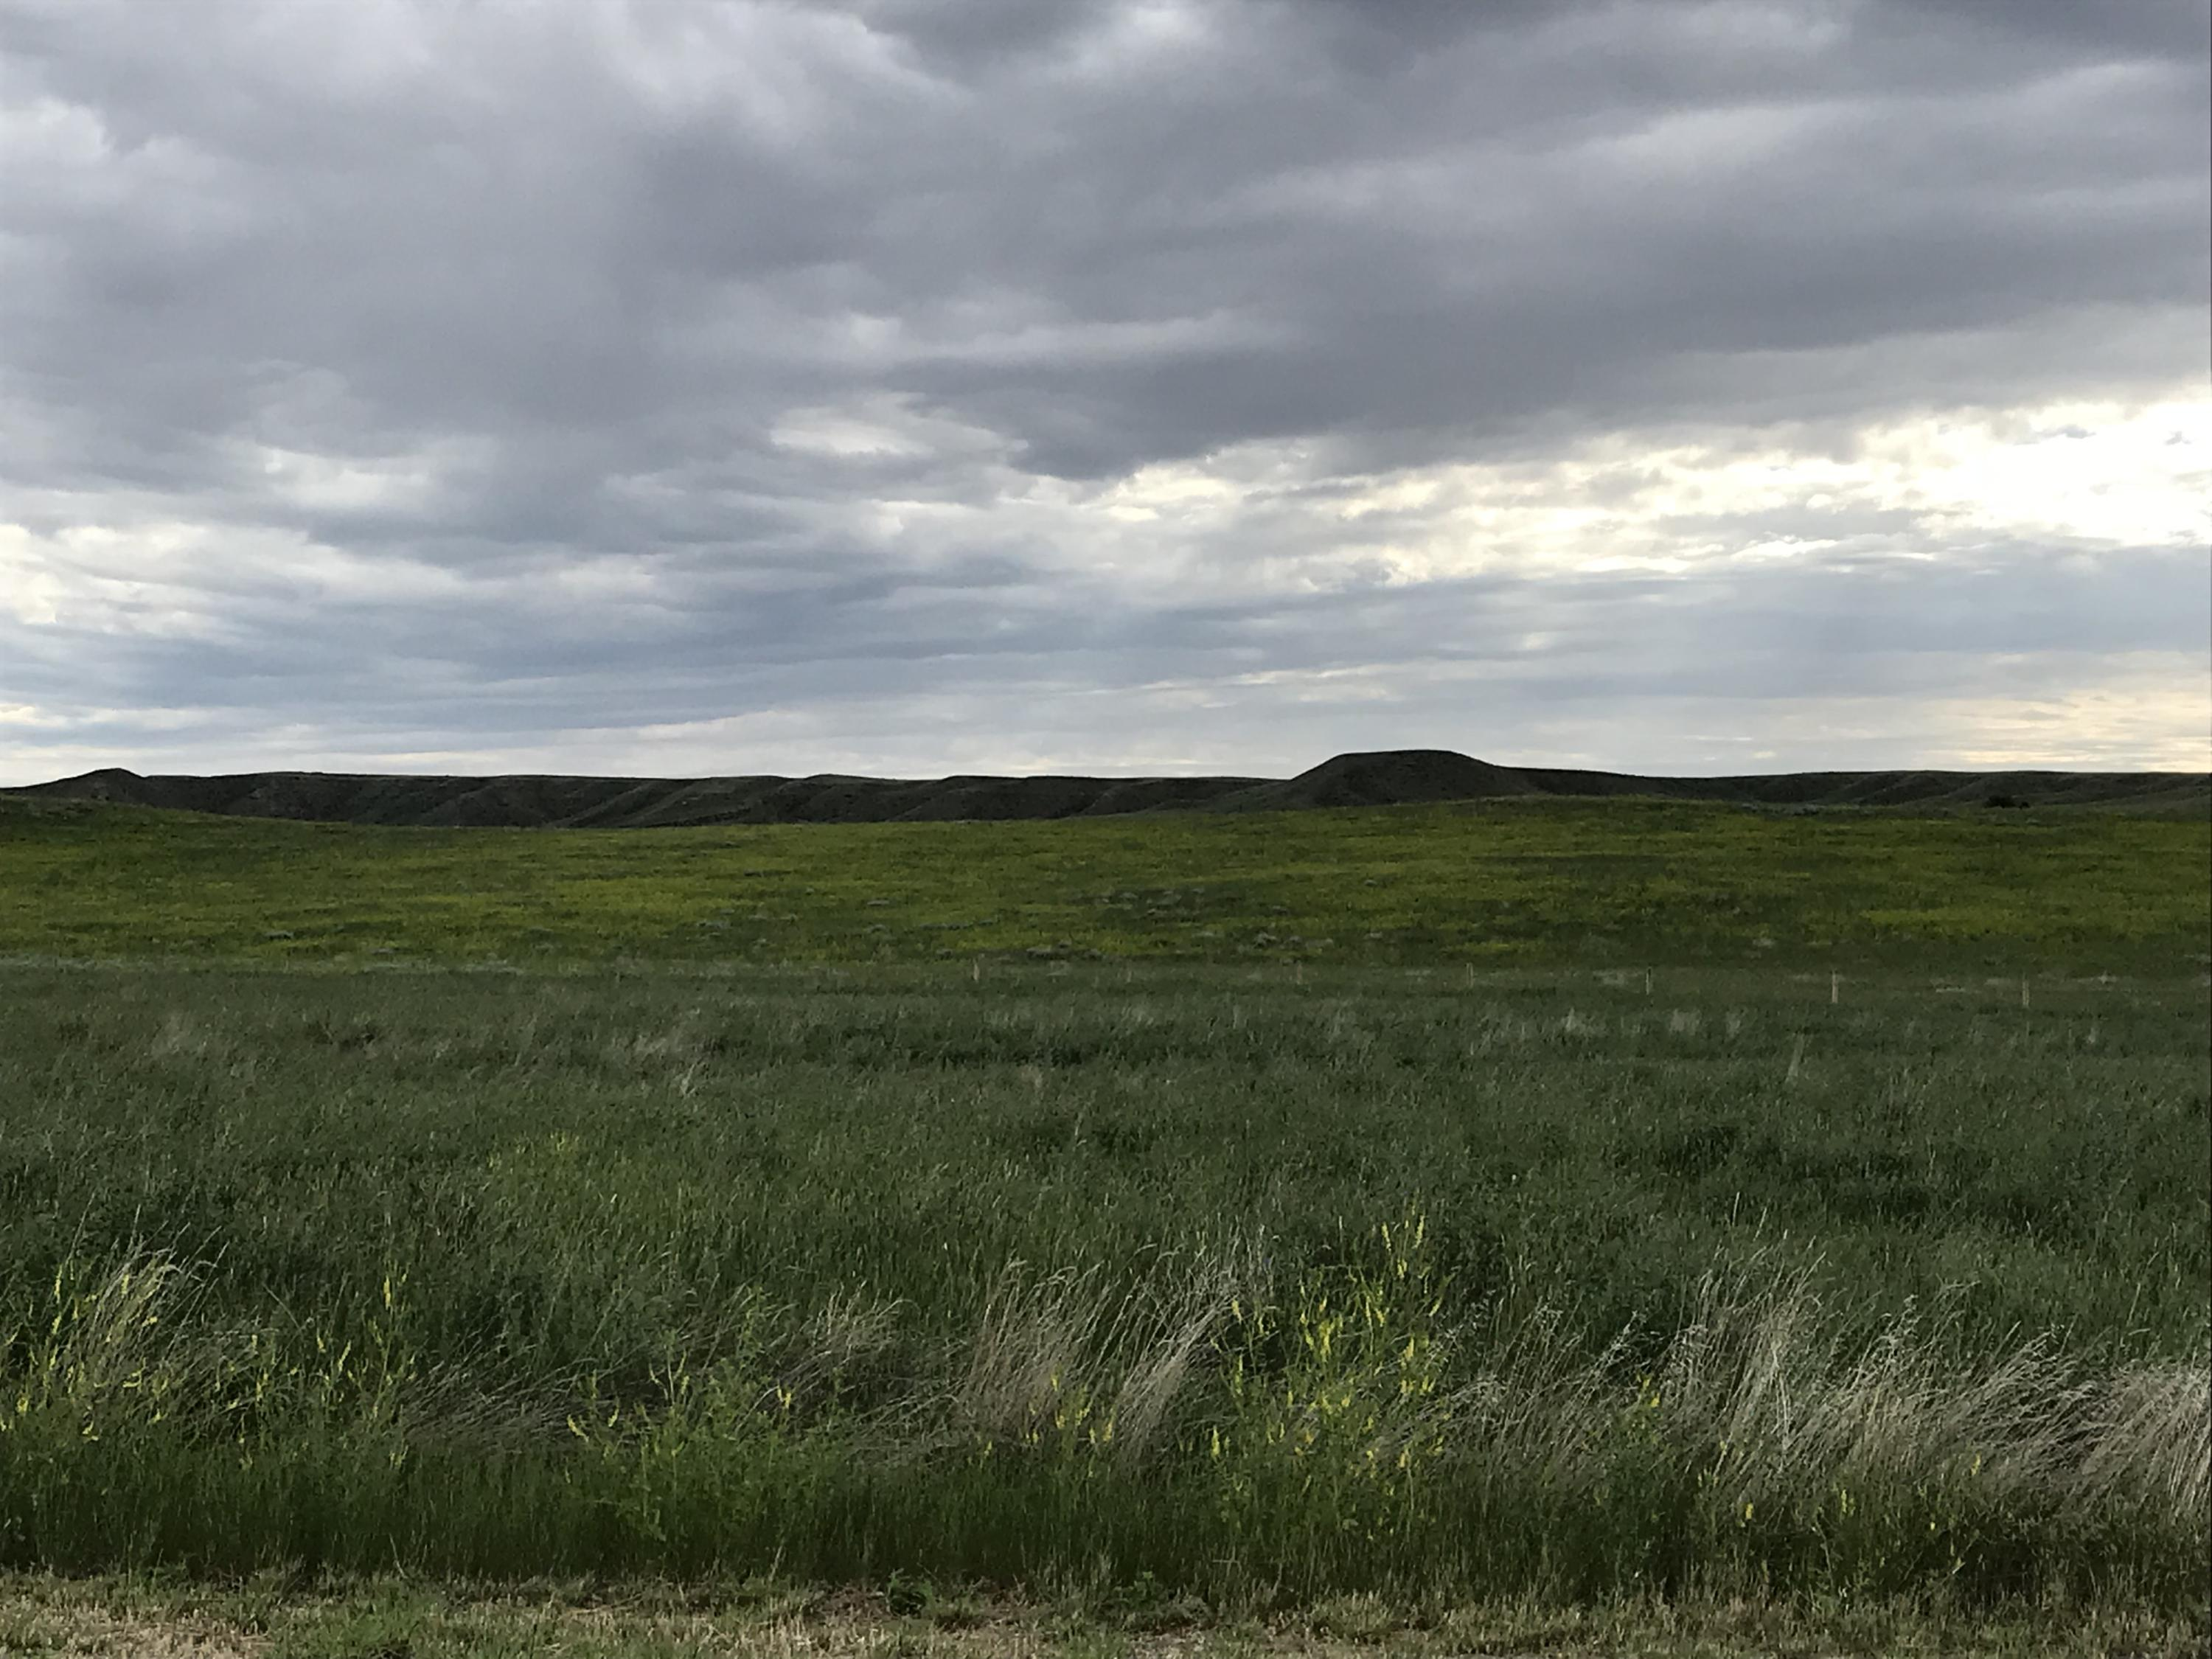 Lot 6 TBD, Buffalo, Wyoming 82834, ,Building Site,For Sale,TBD,17-701